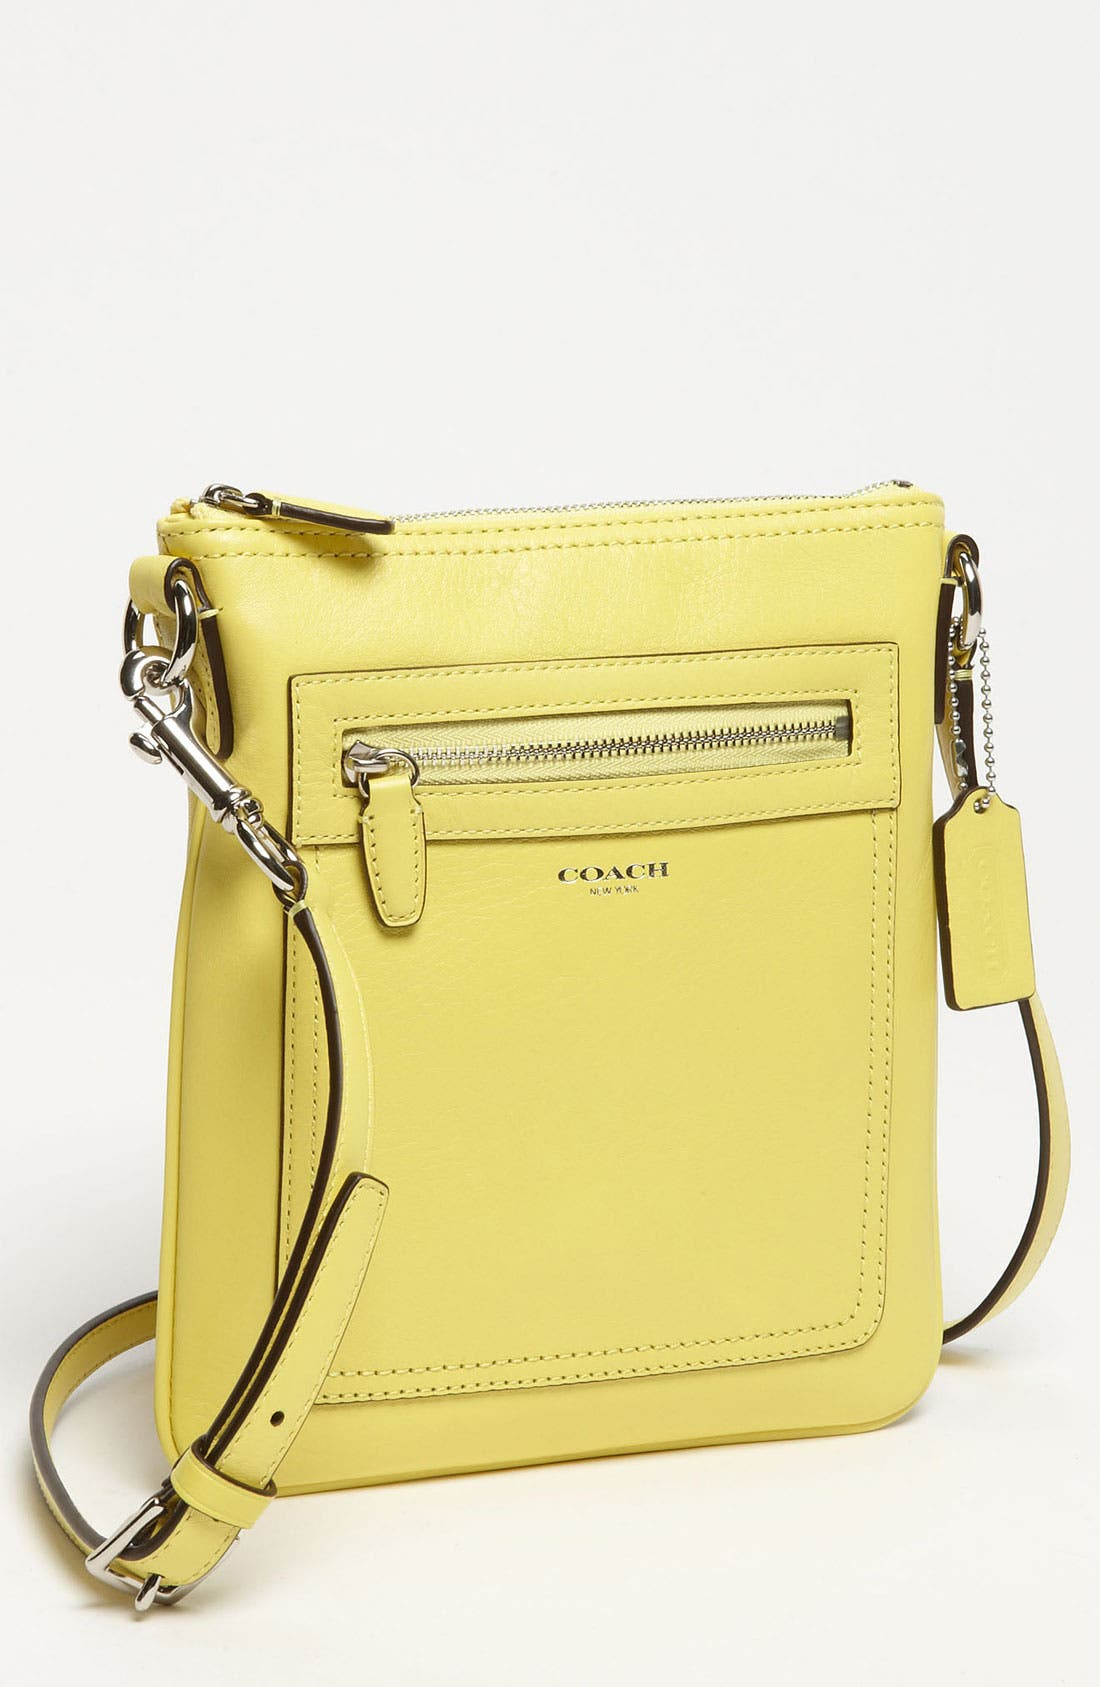 Main Image - COACH 'Legacy' Leather Crossbody Bag